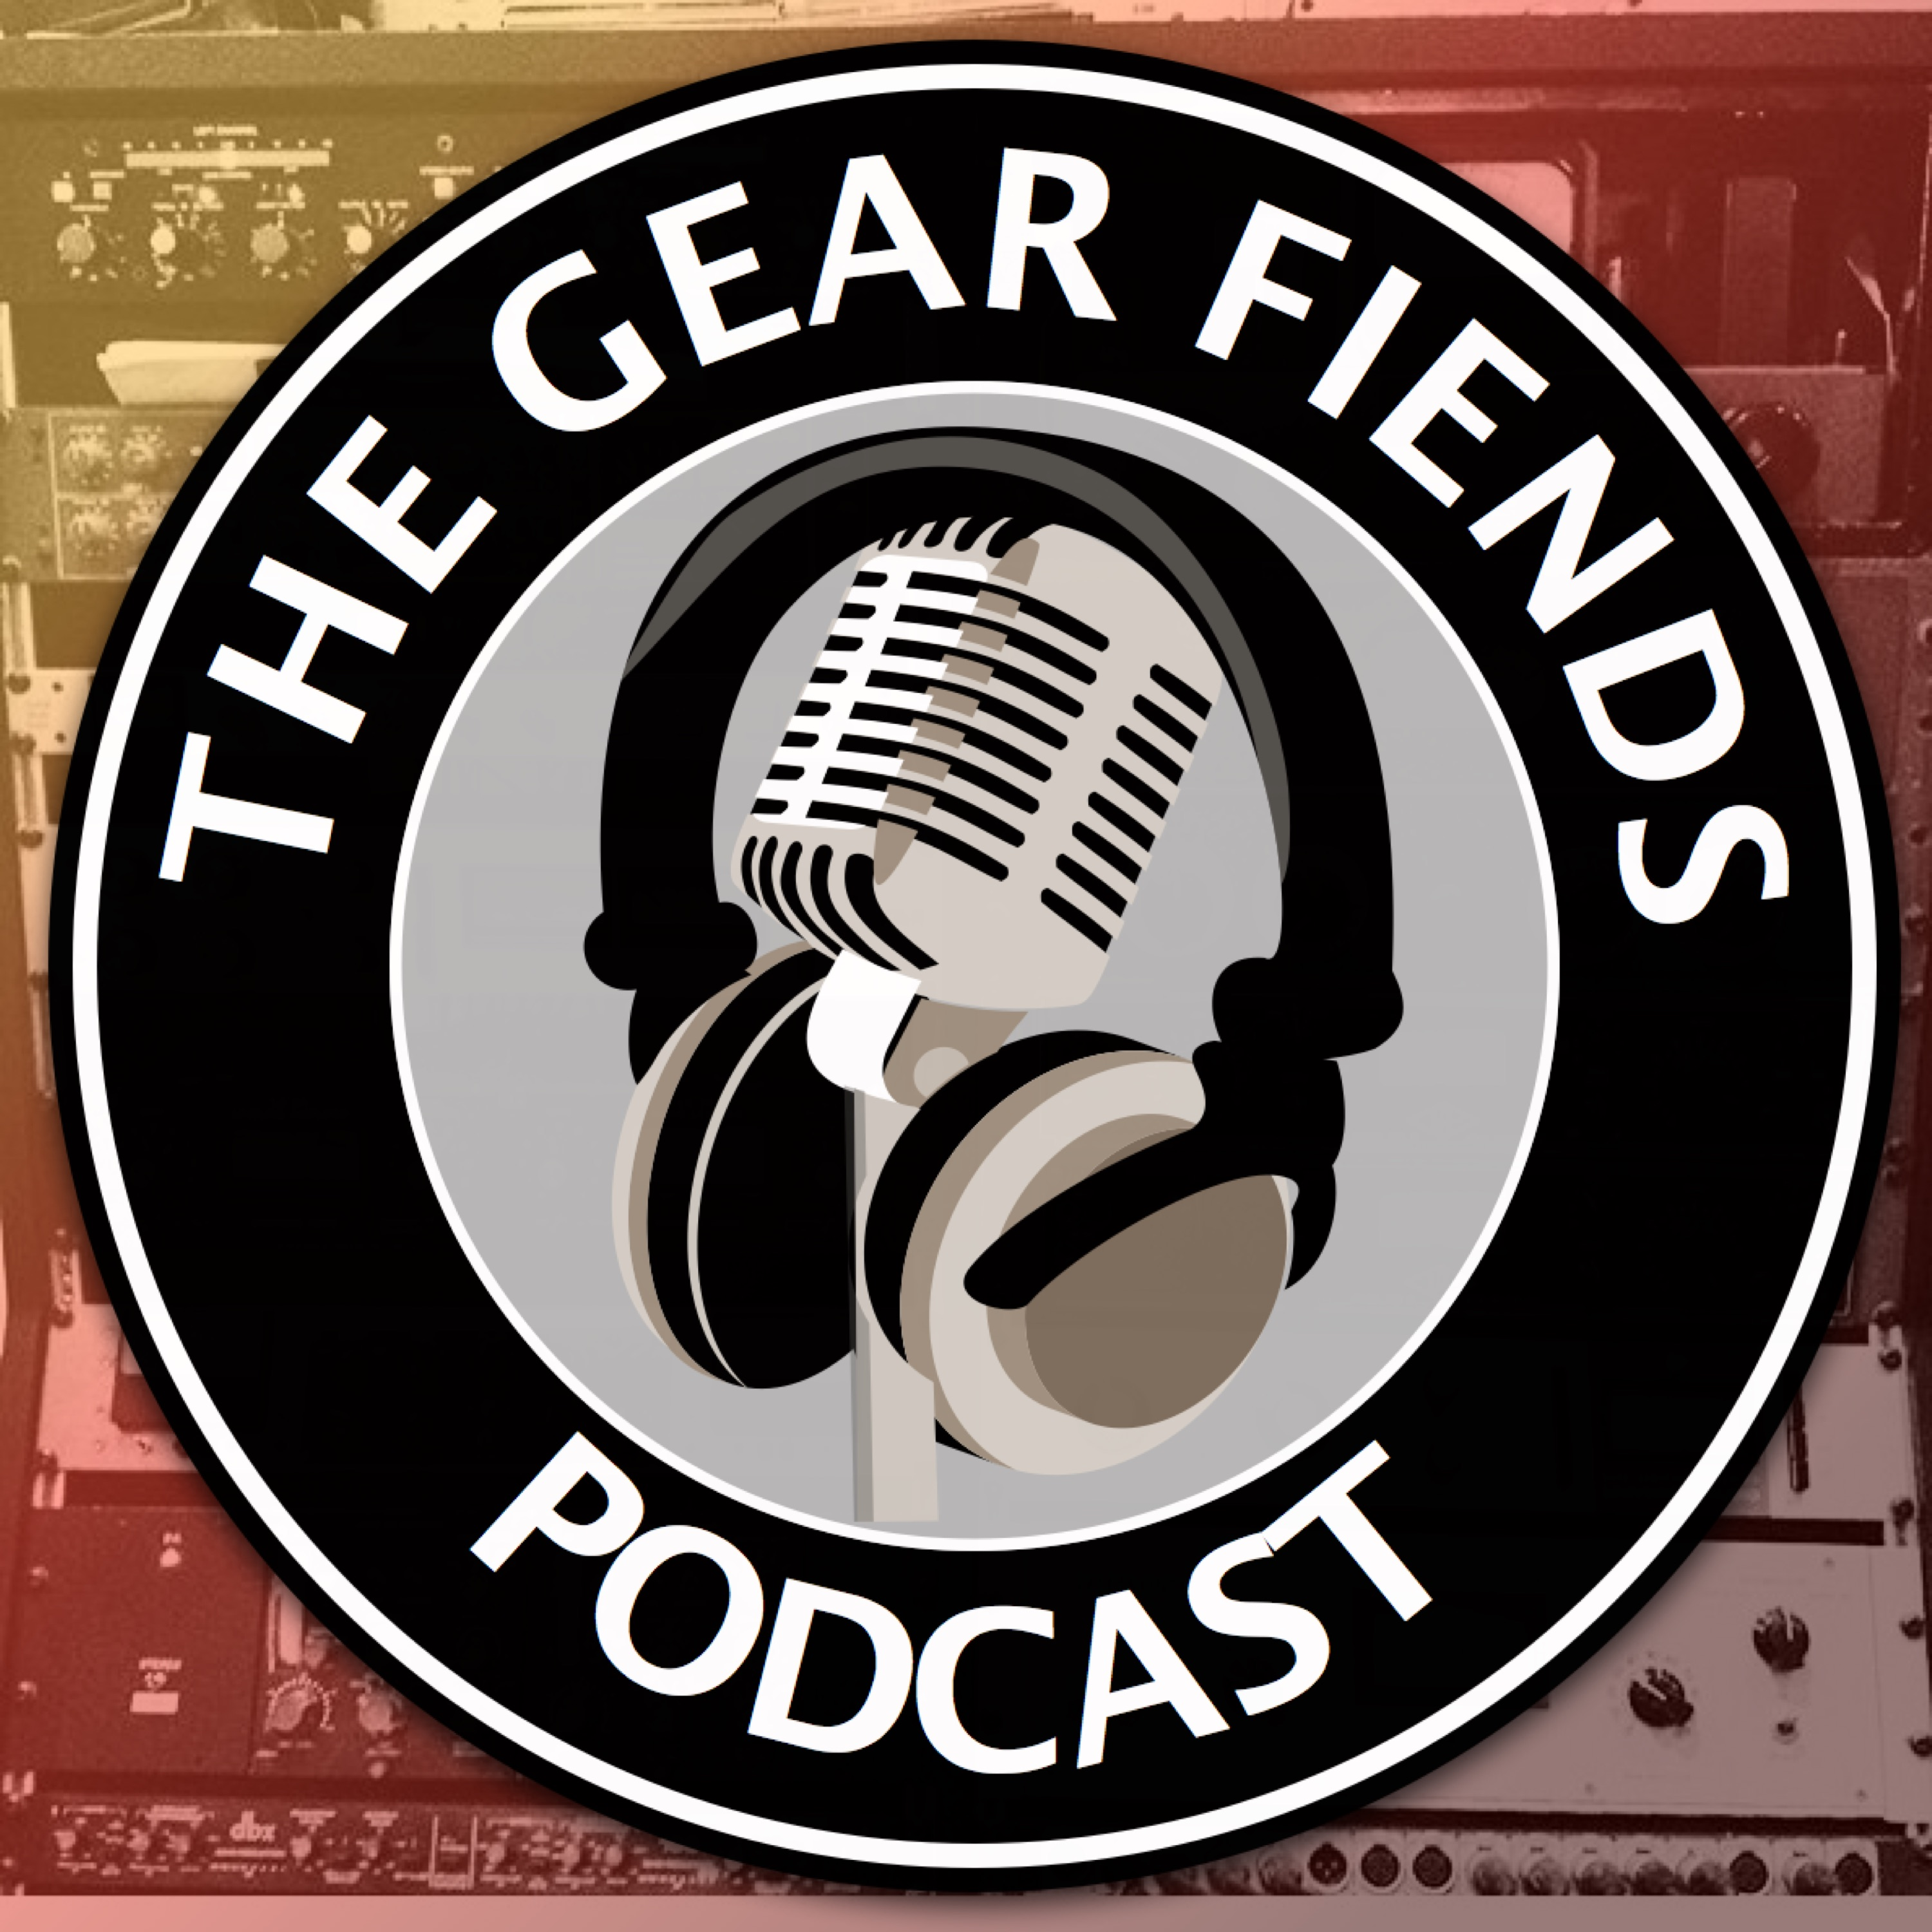 The Gear Fiends Podcast